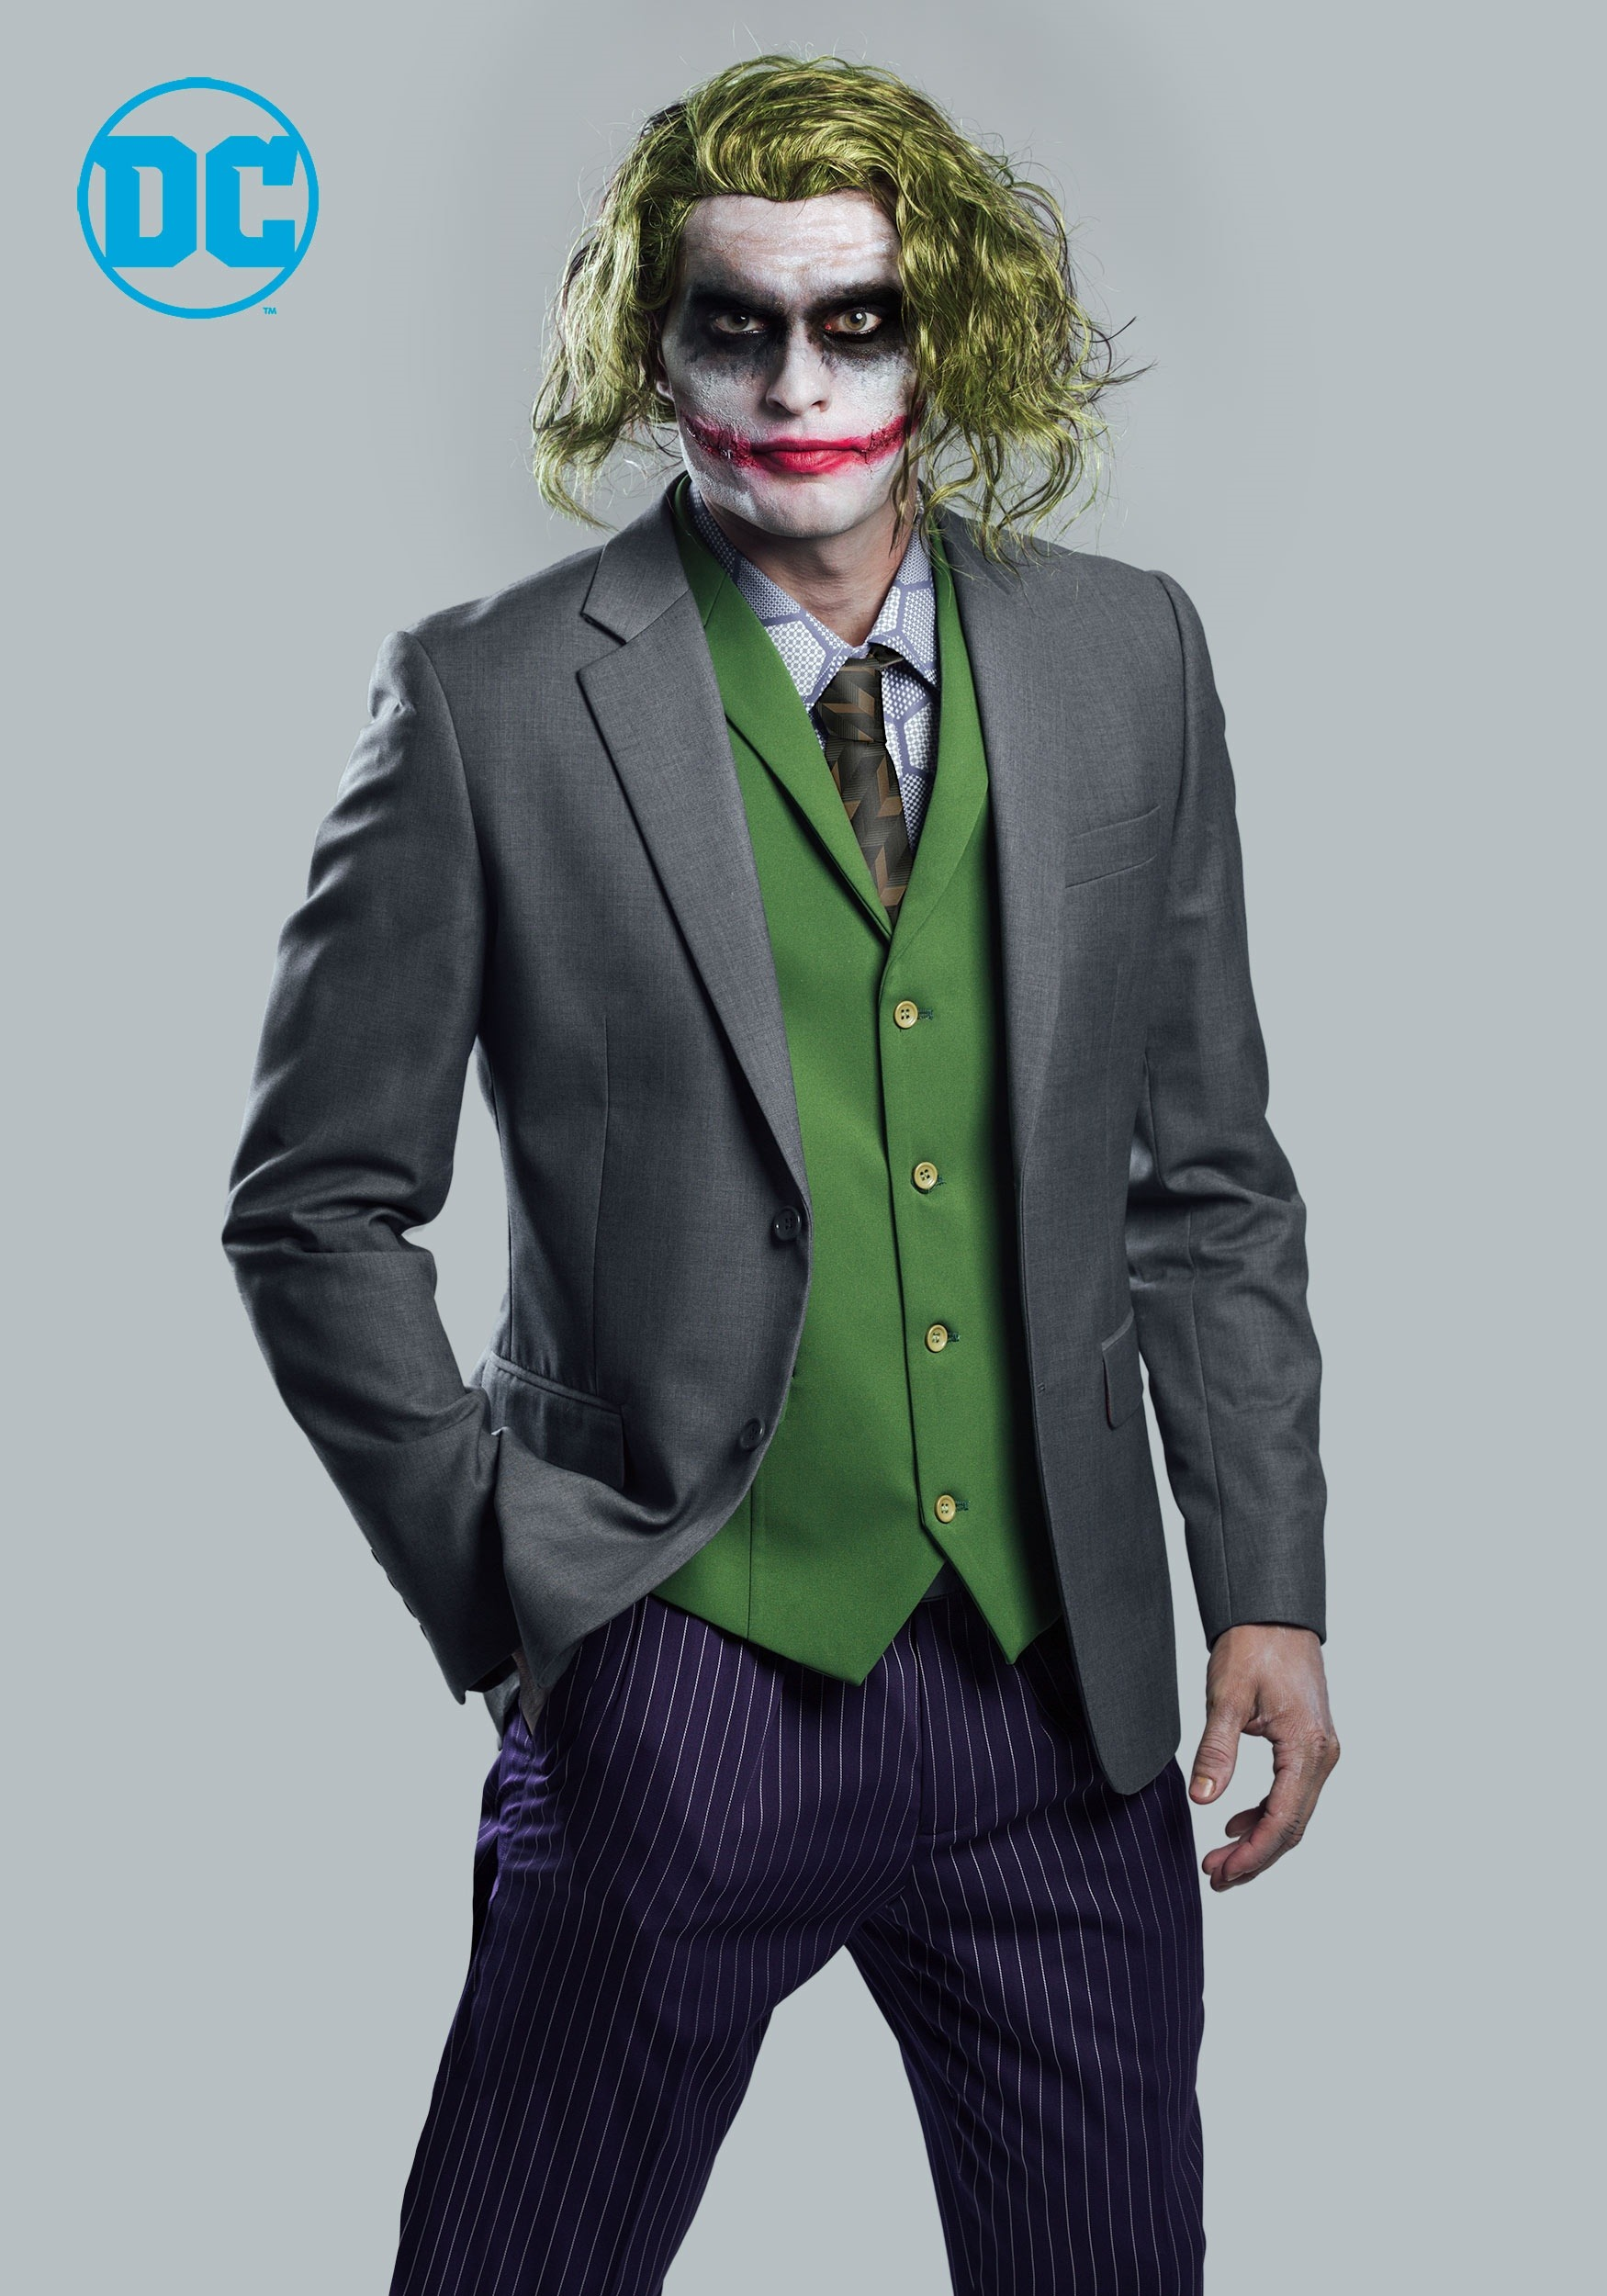 The Joker Suit Jacket (Authentic)